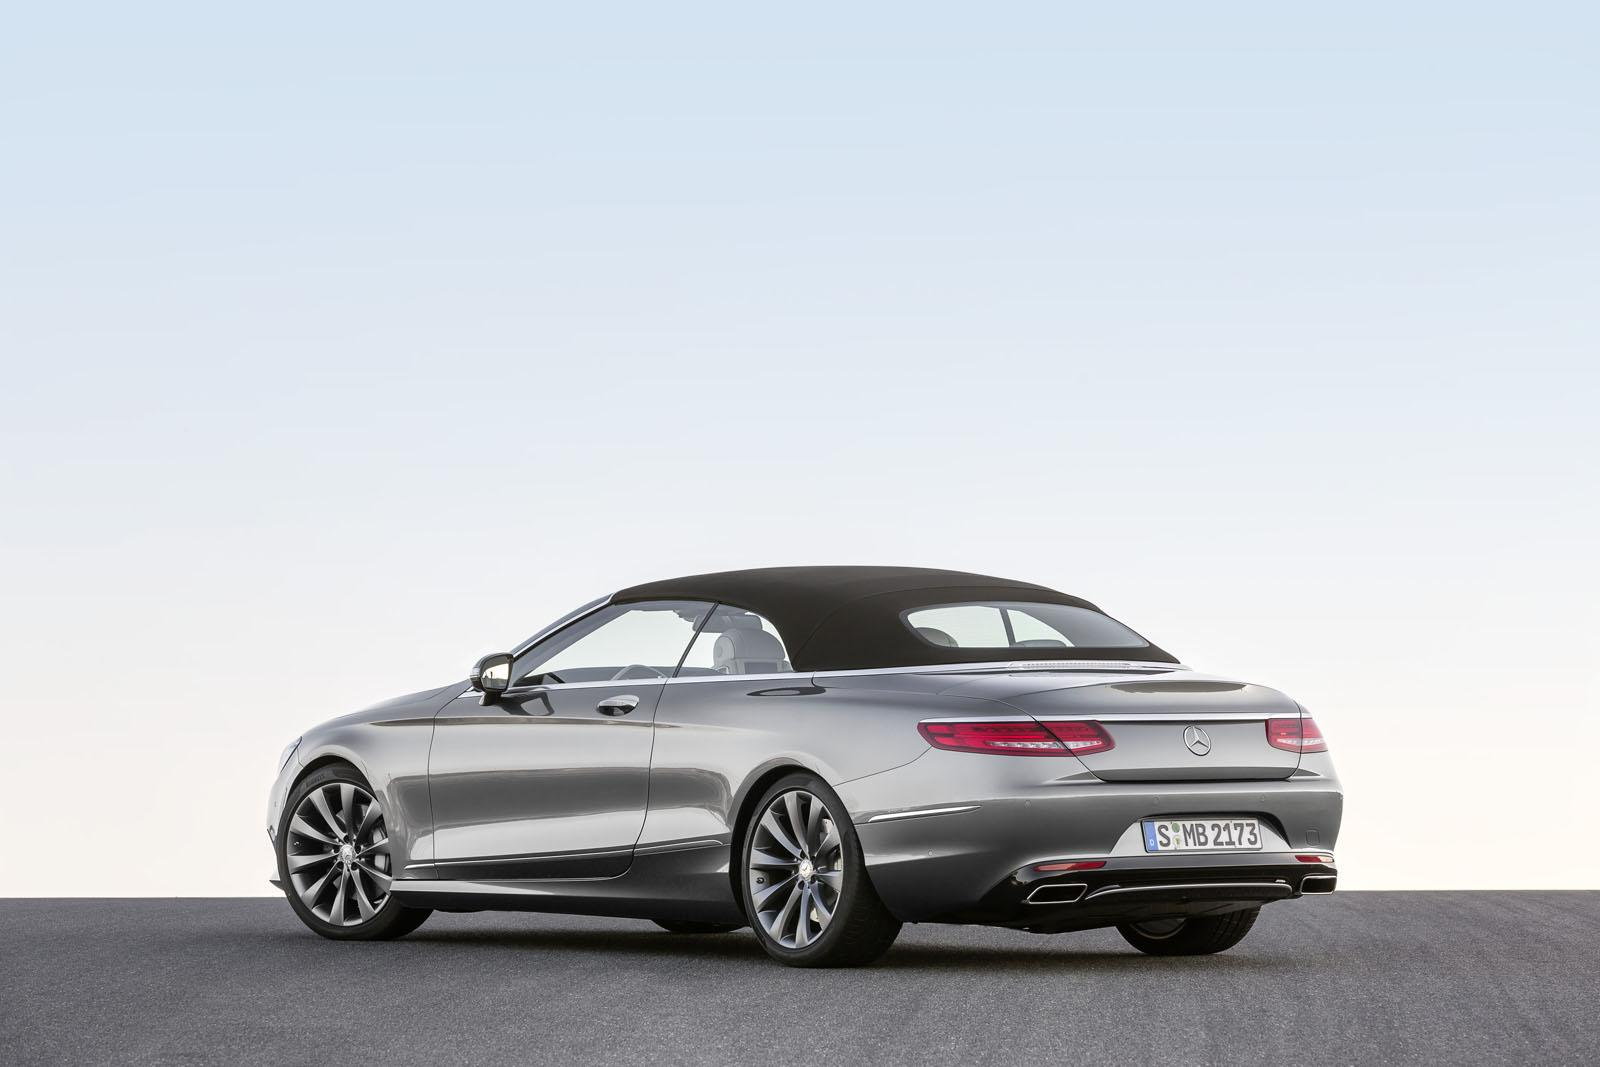 2016 Mercedes S Class Cabriolet rear three quarter unveiled